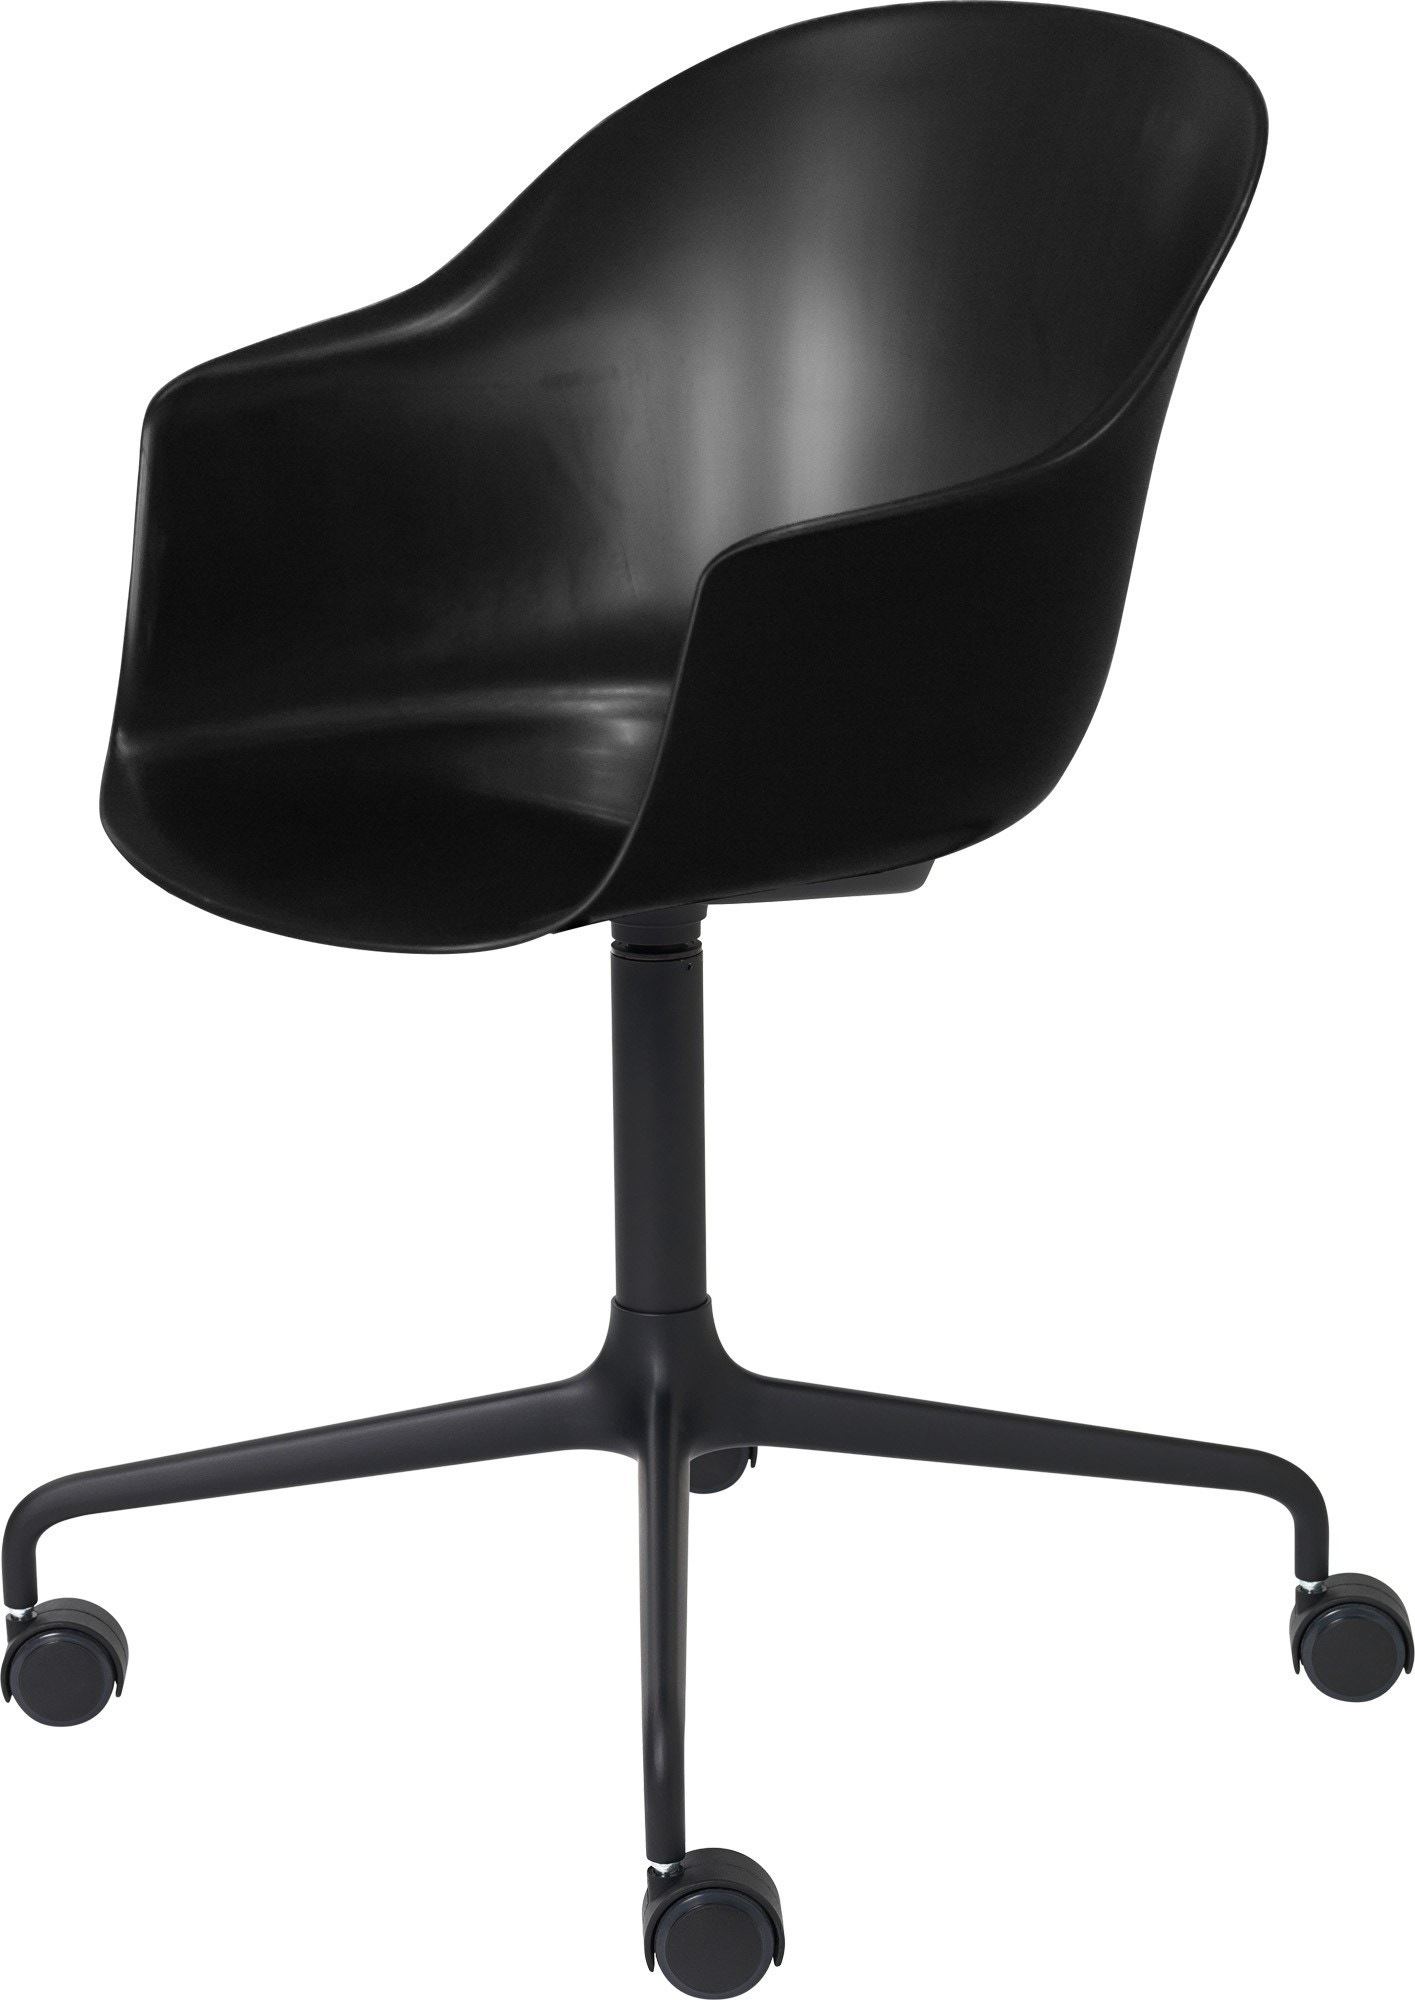 GUBI Bat 4-Star Base Meeting Chair with Castors